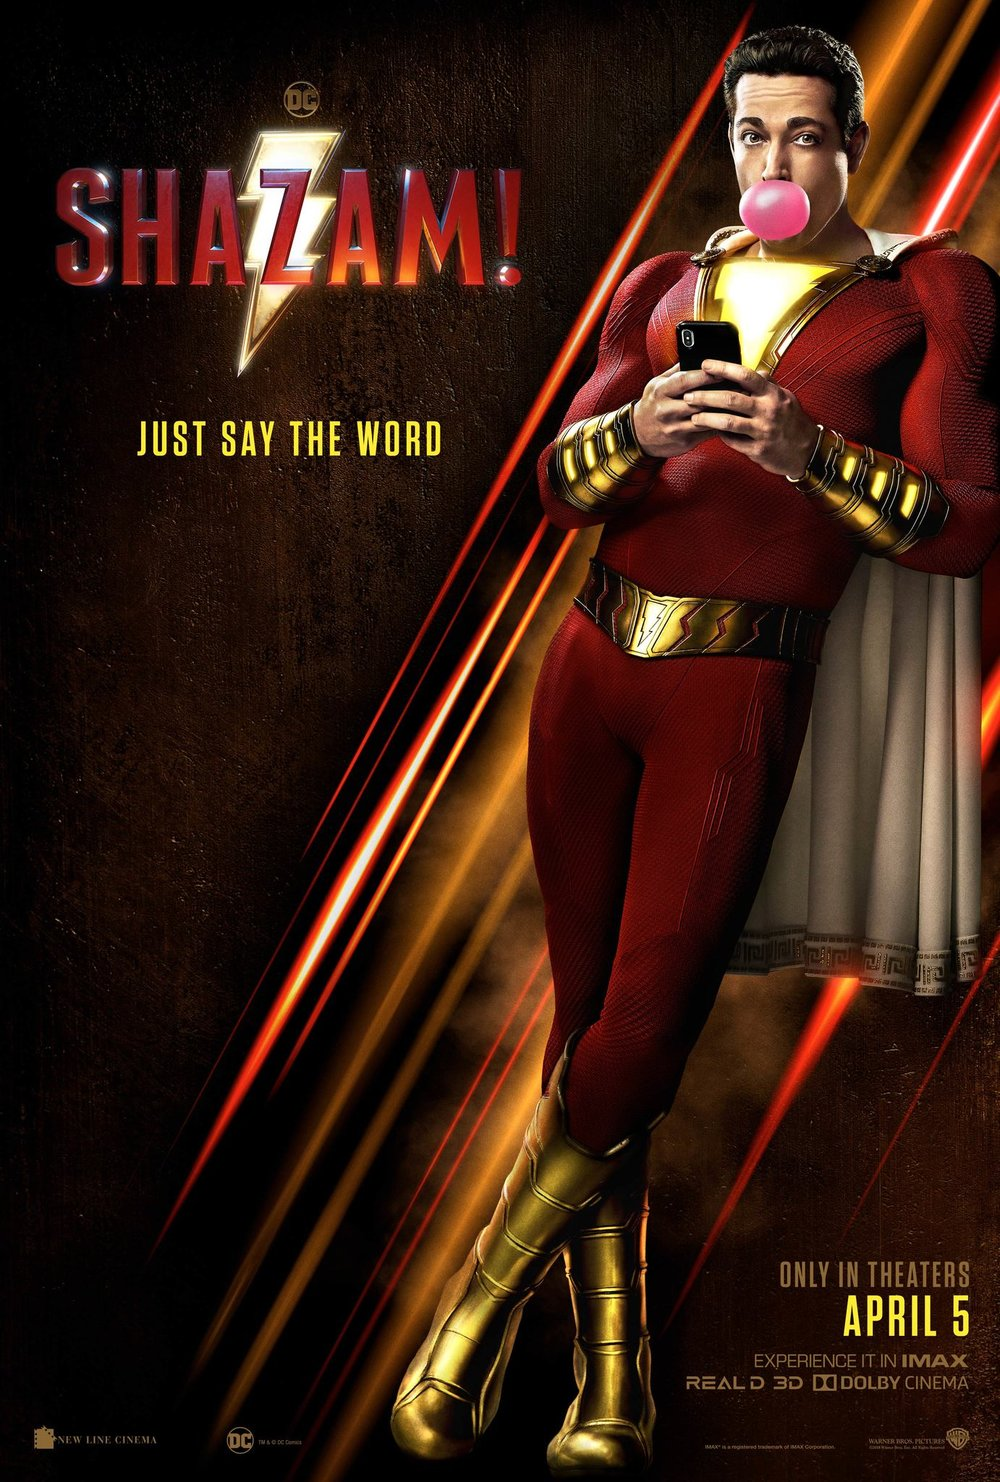 shazam-3d-3-d-movie-dc-review.jpeg